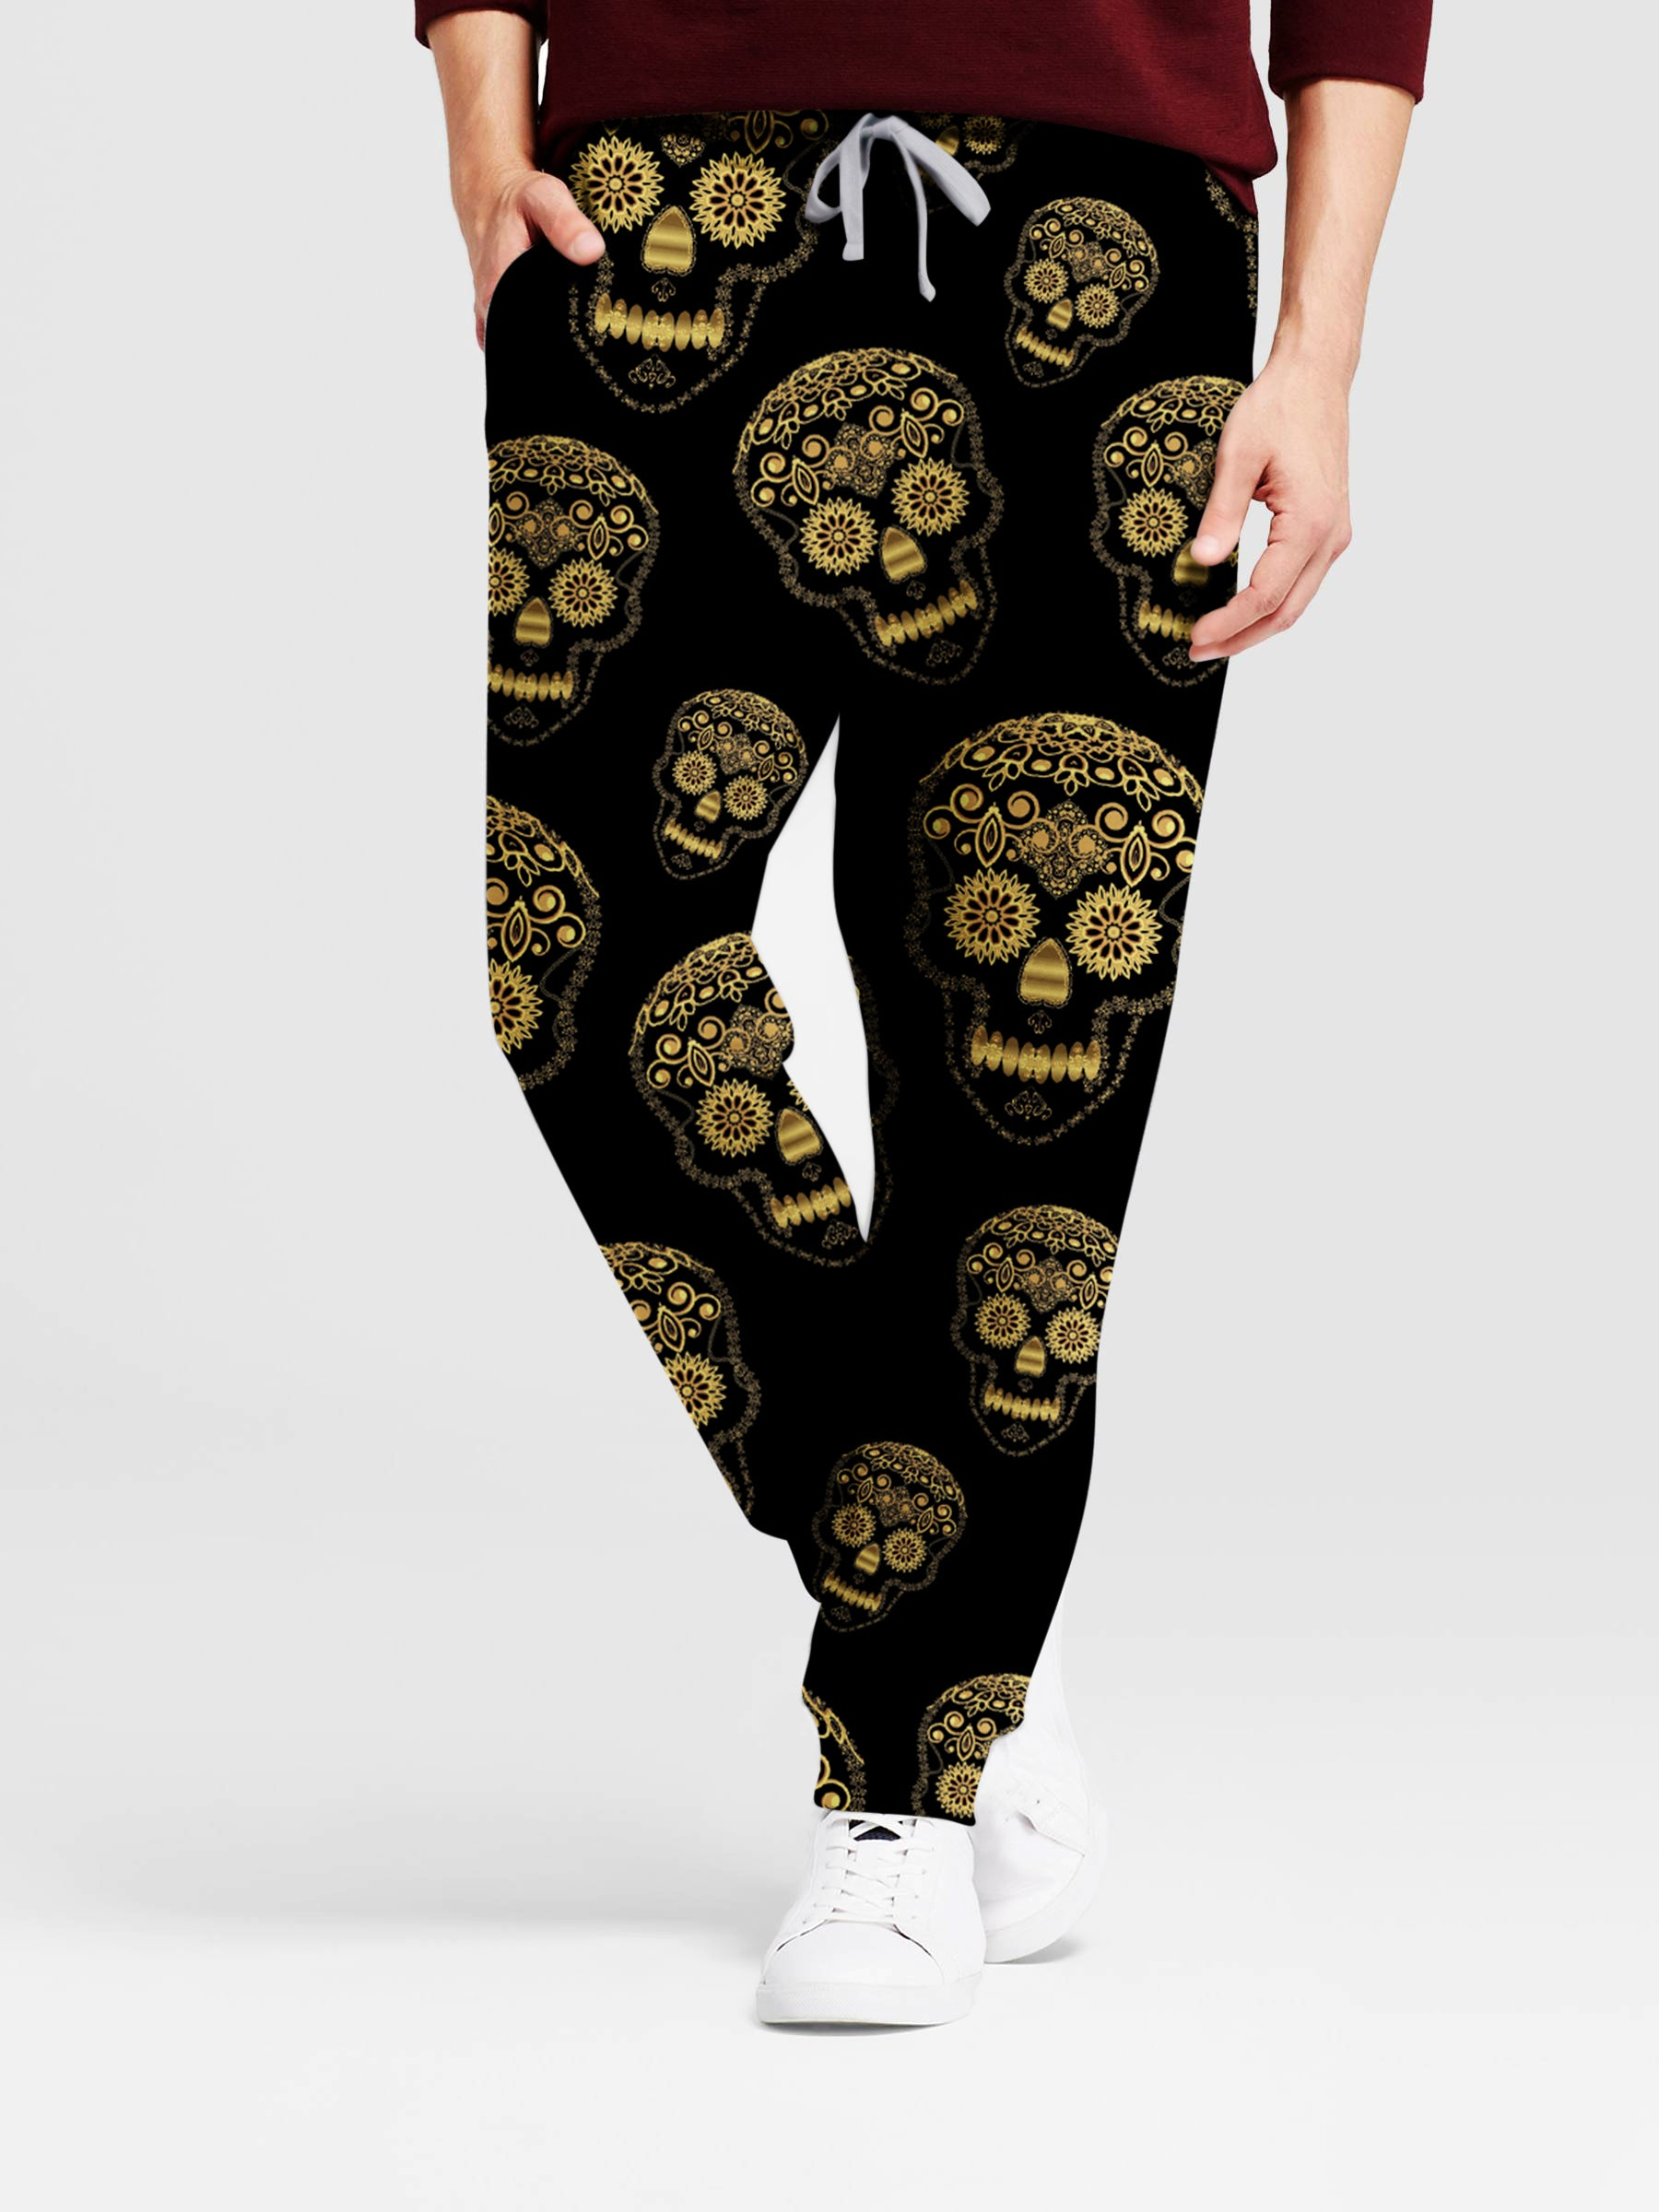 Skull Art 3D Pants 02 - designfullprint